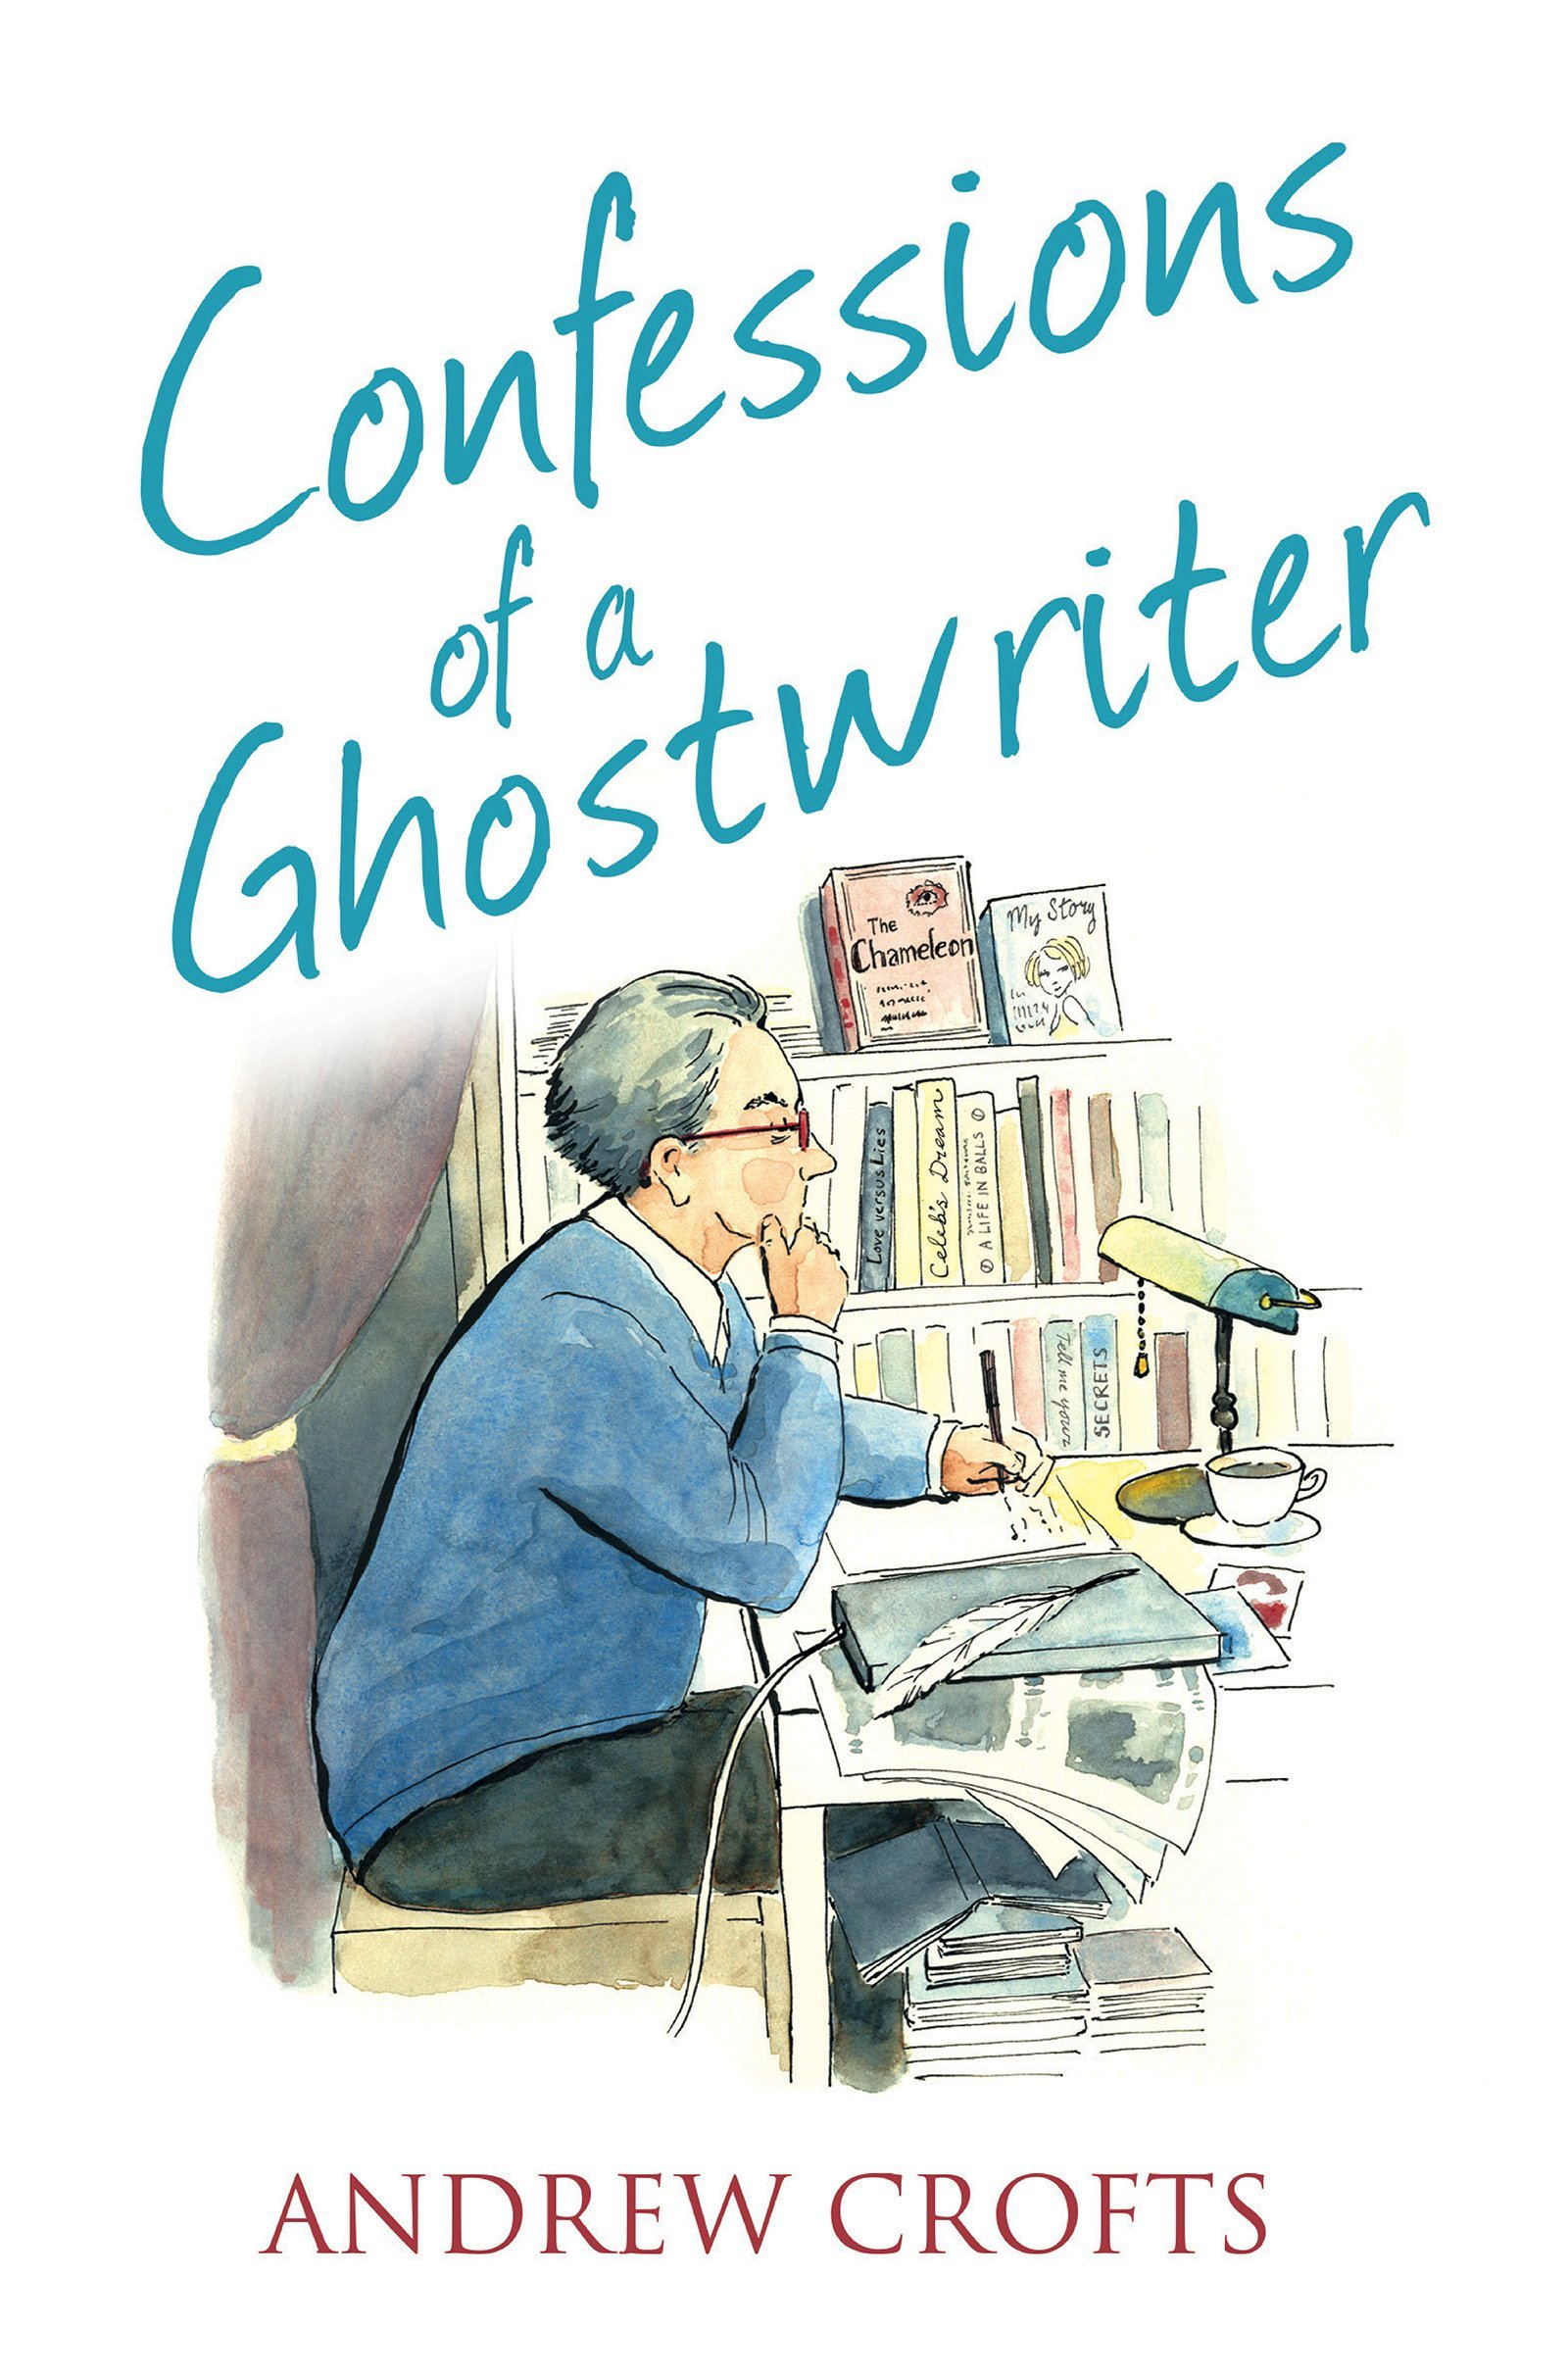 Ghostwriter for school paper